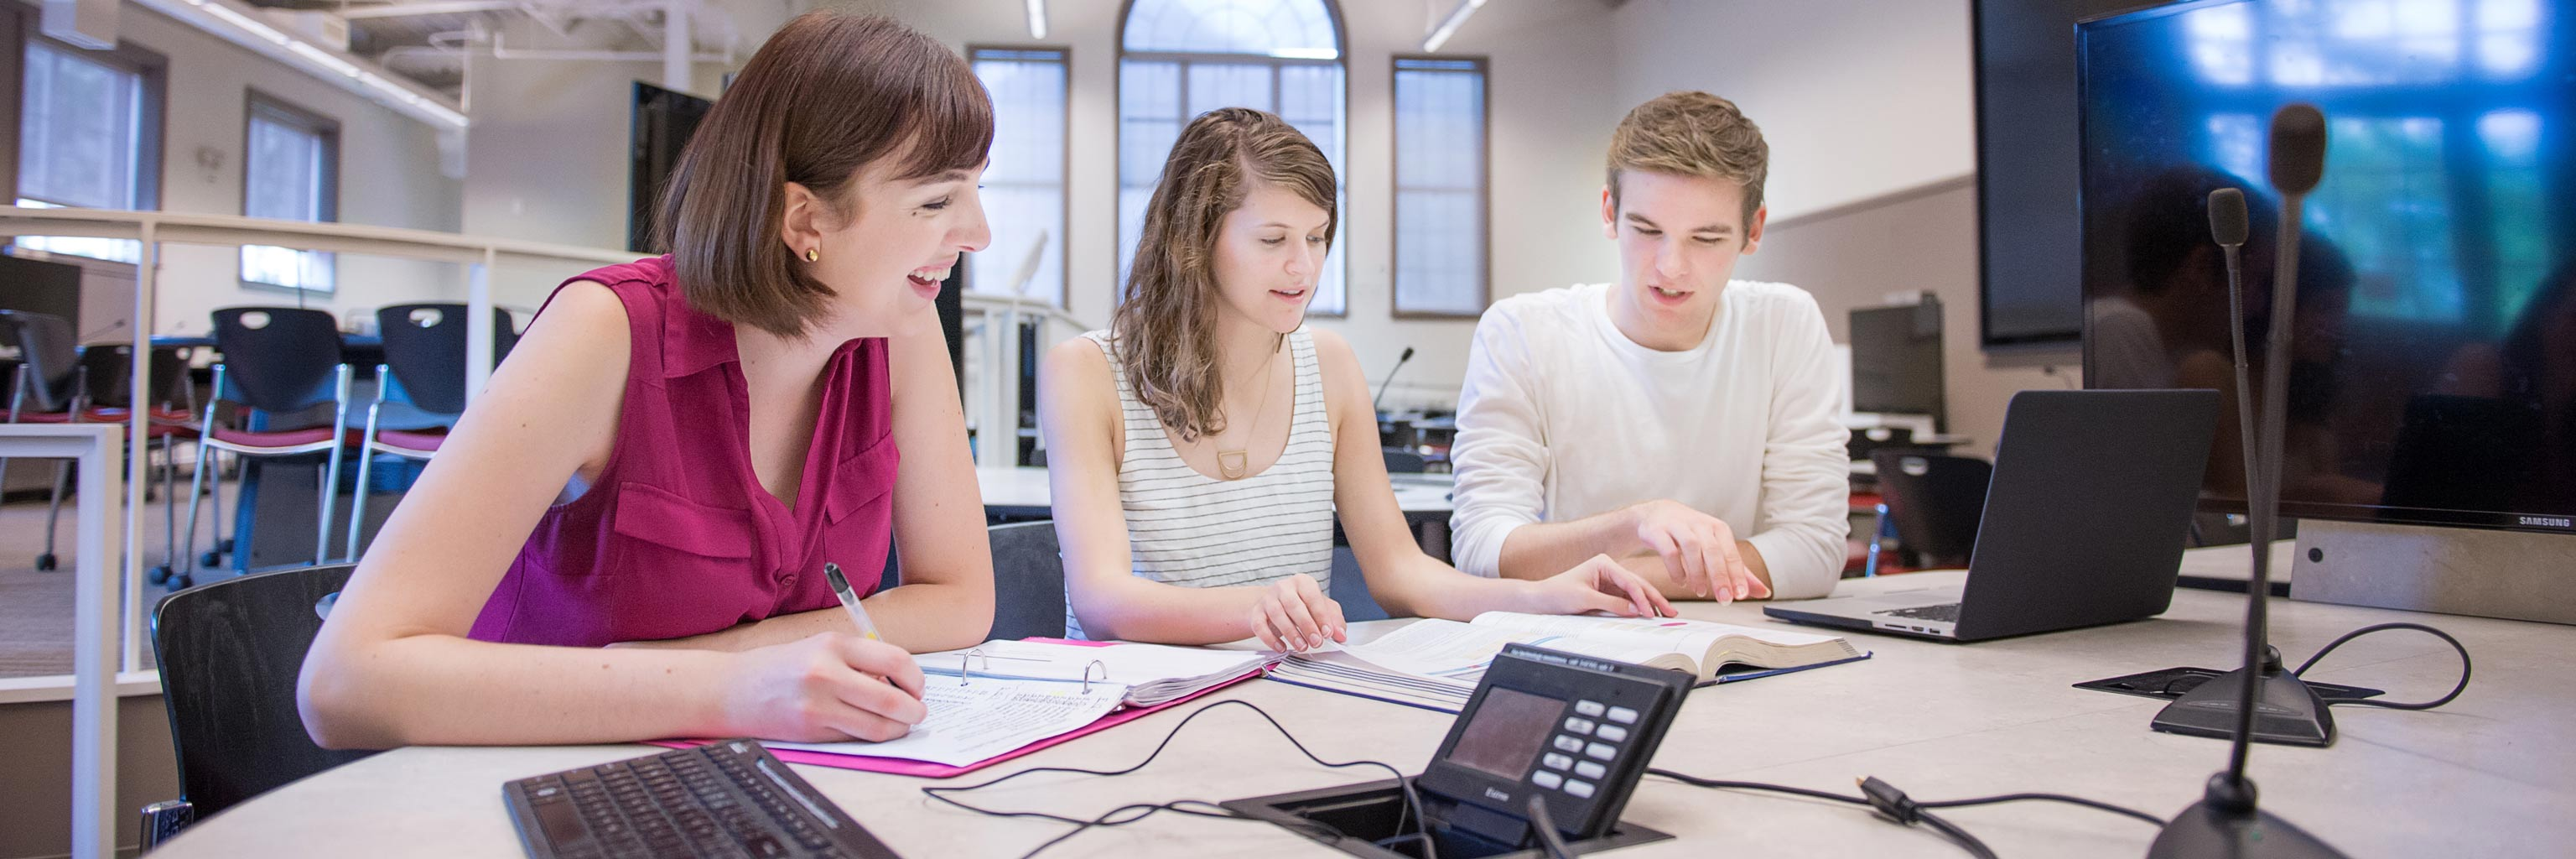 Three students working together around a table